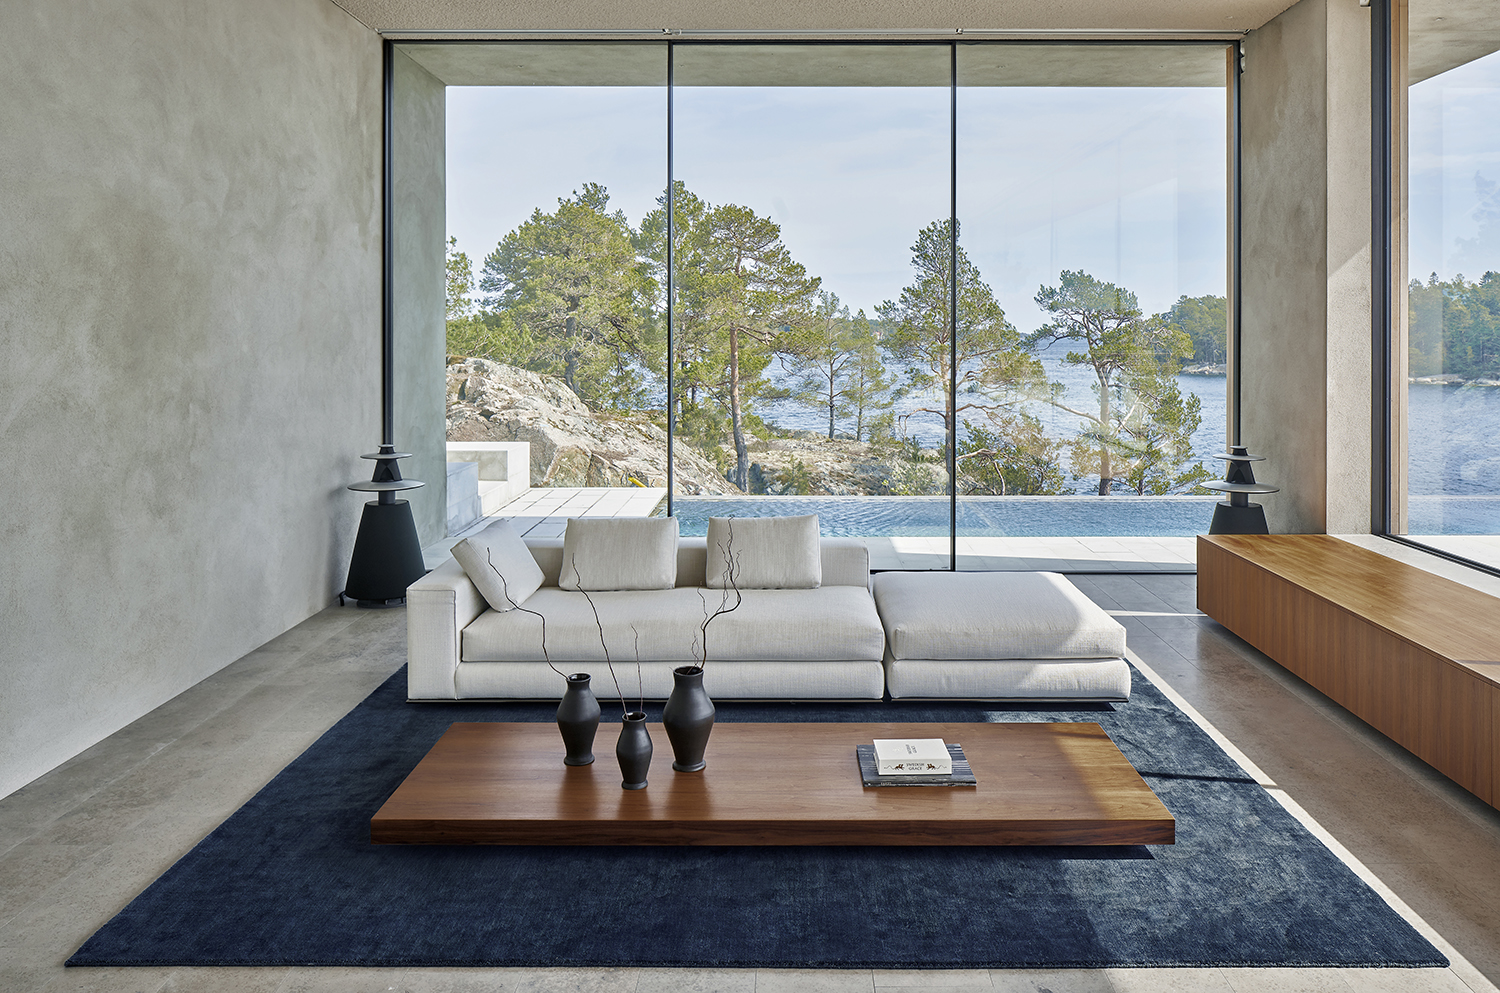 Plush rug Grand in color Deep Blue displayed in a contemporary archipelago house with a view.